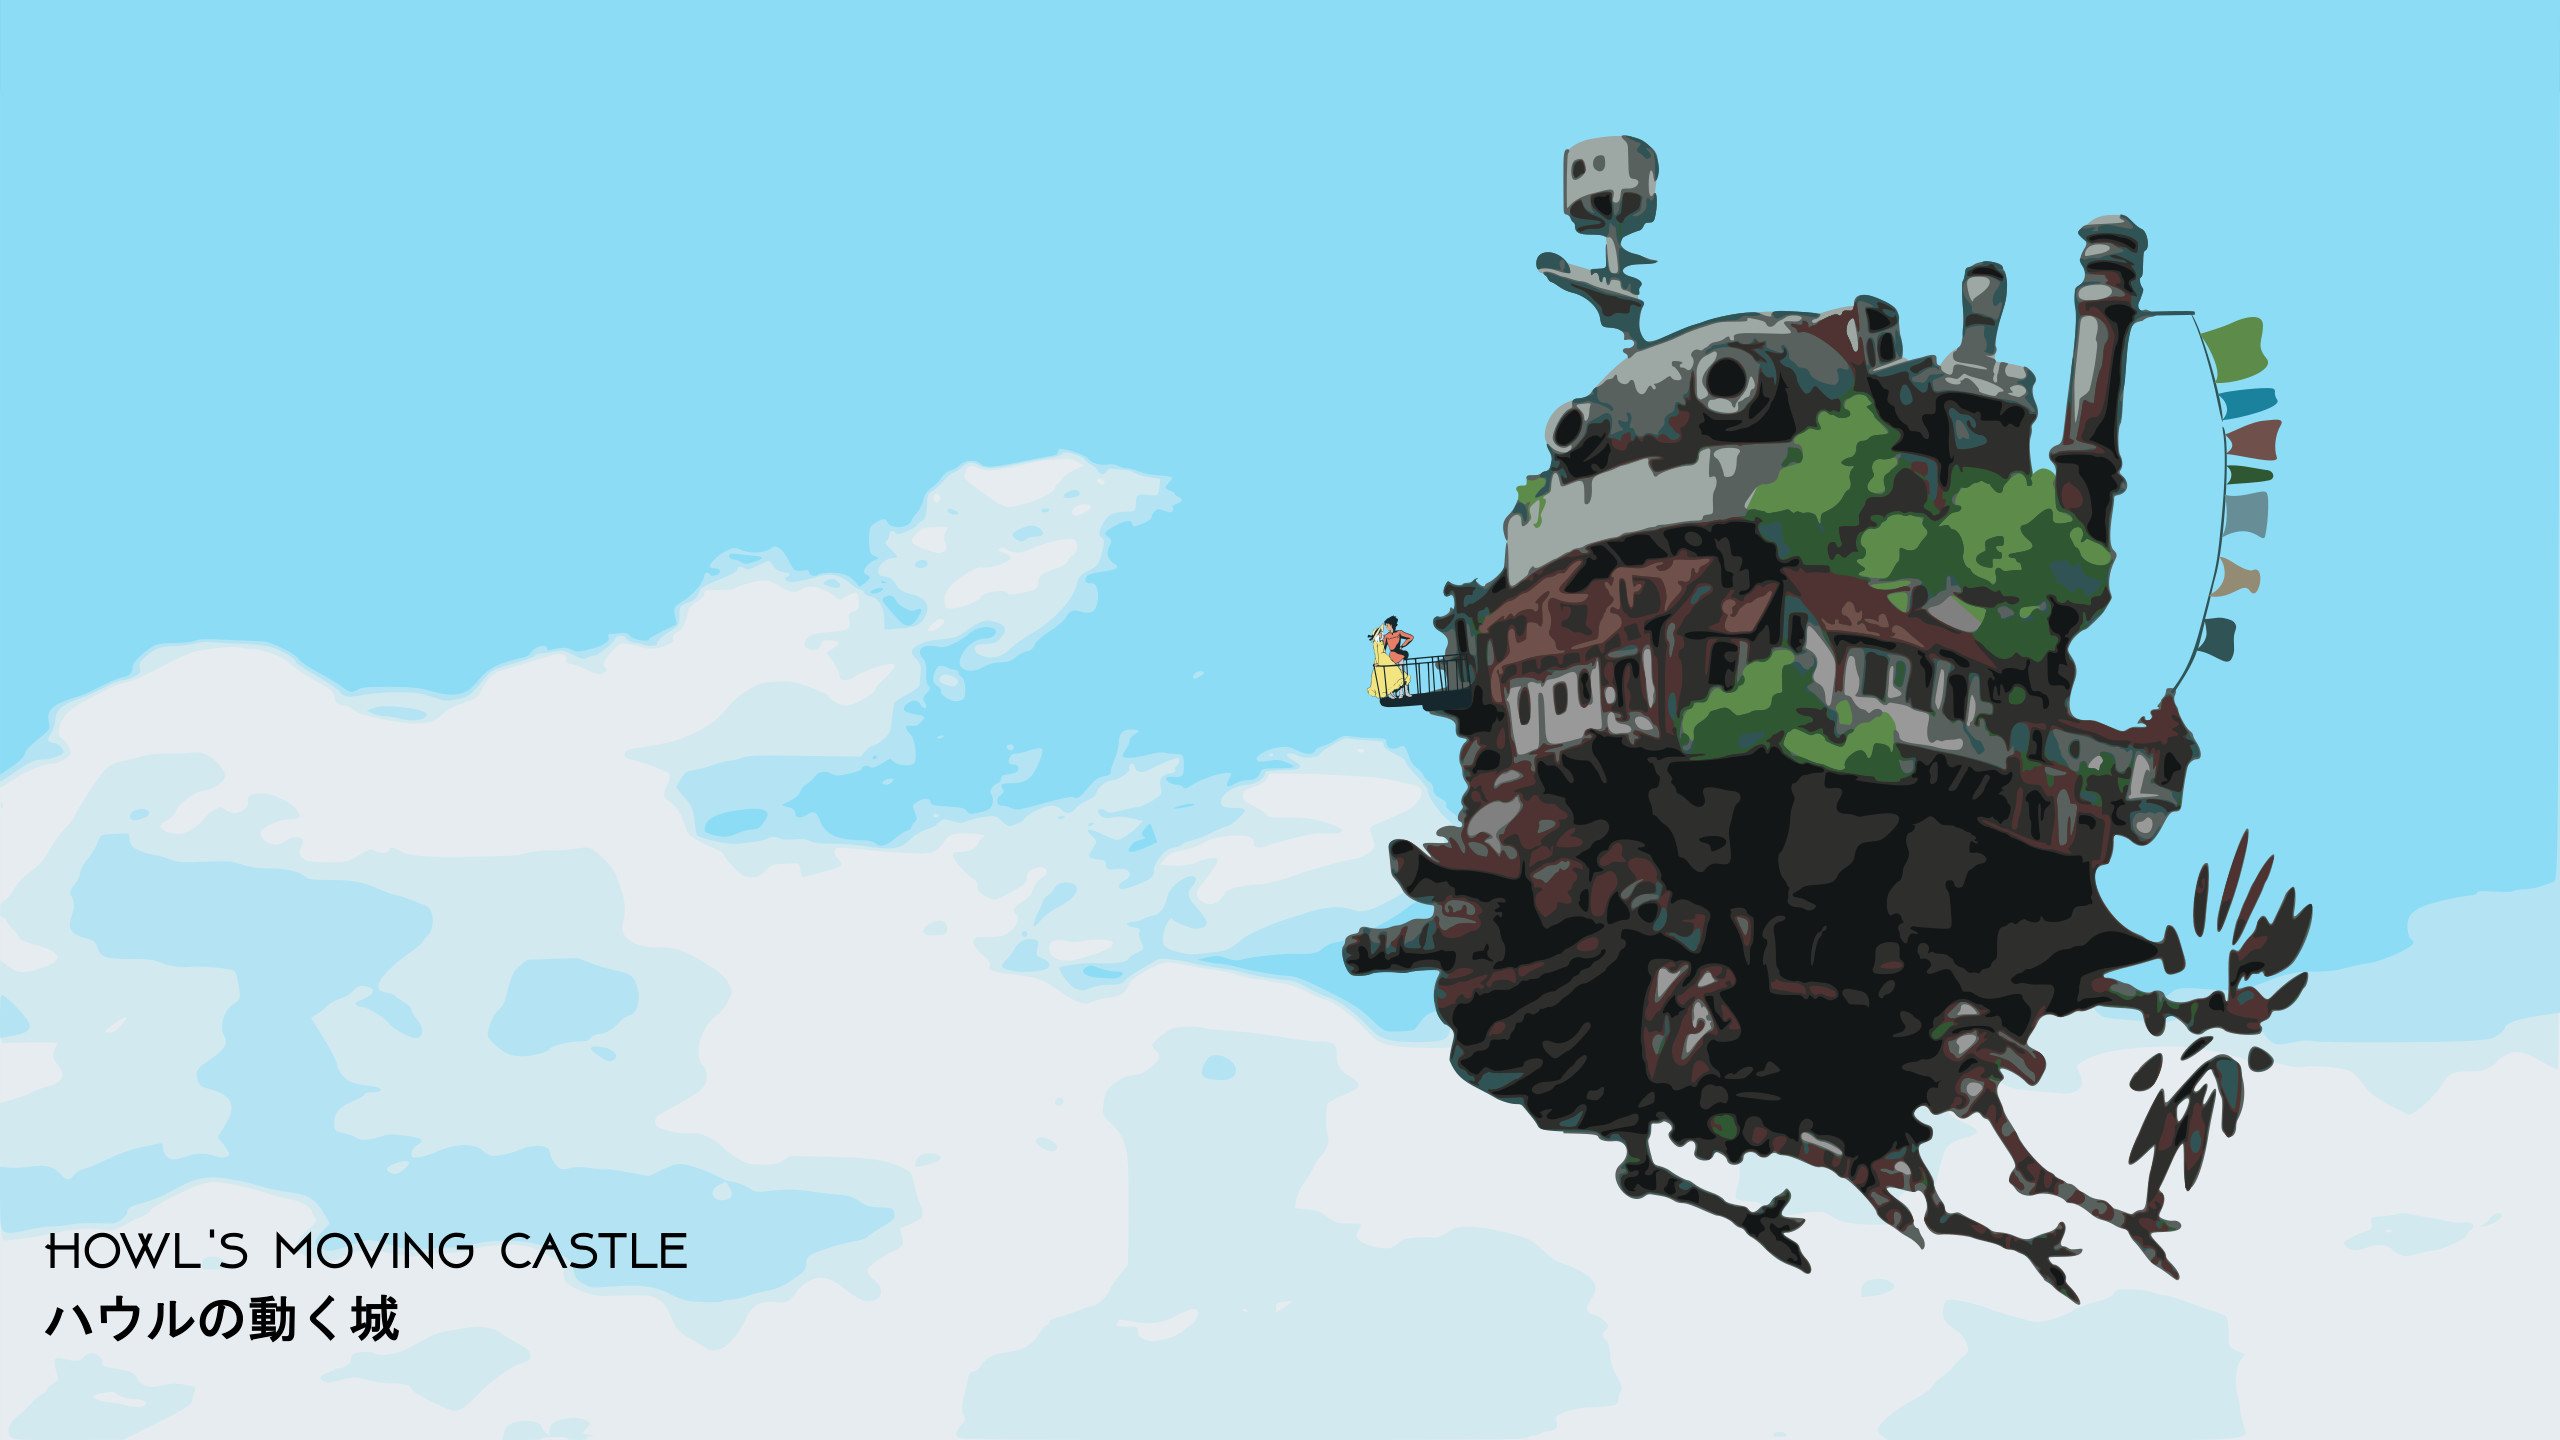 … Howl's Moving Castle – Wallpaper 1440p 2 by Jinco1255